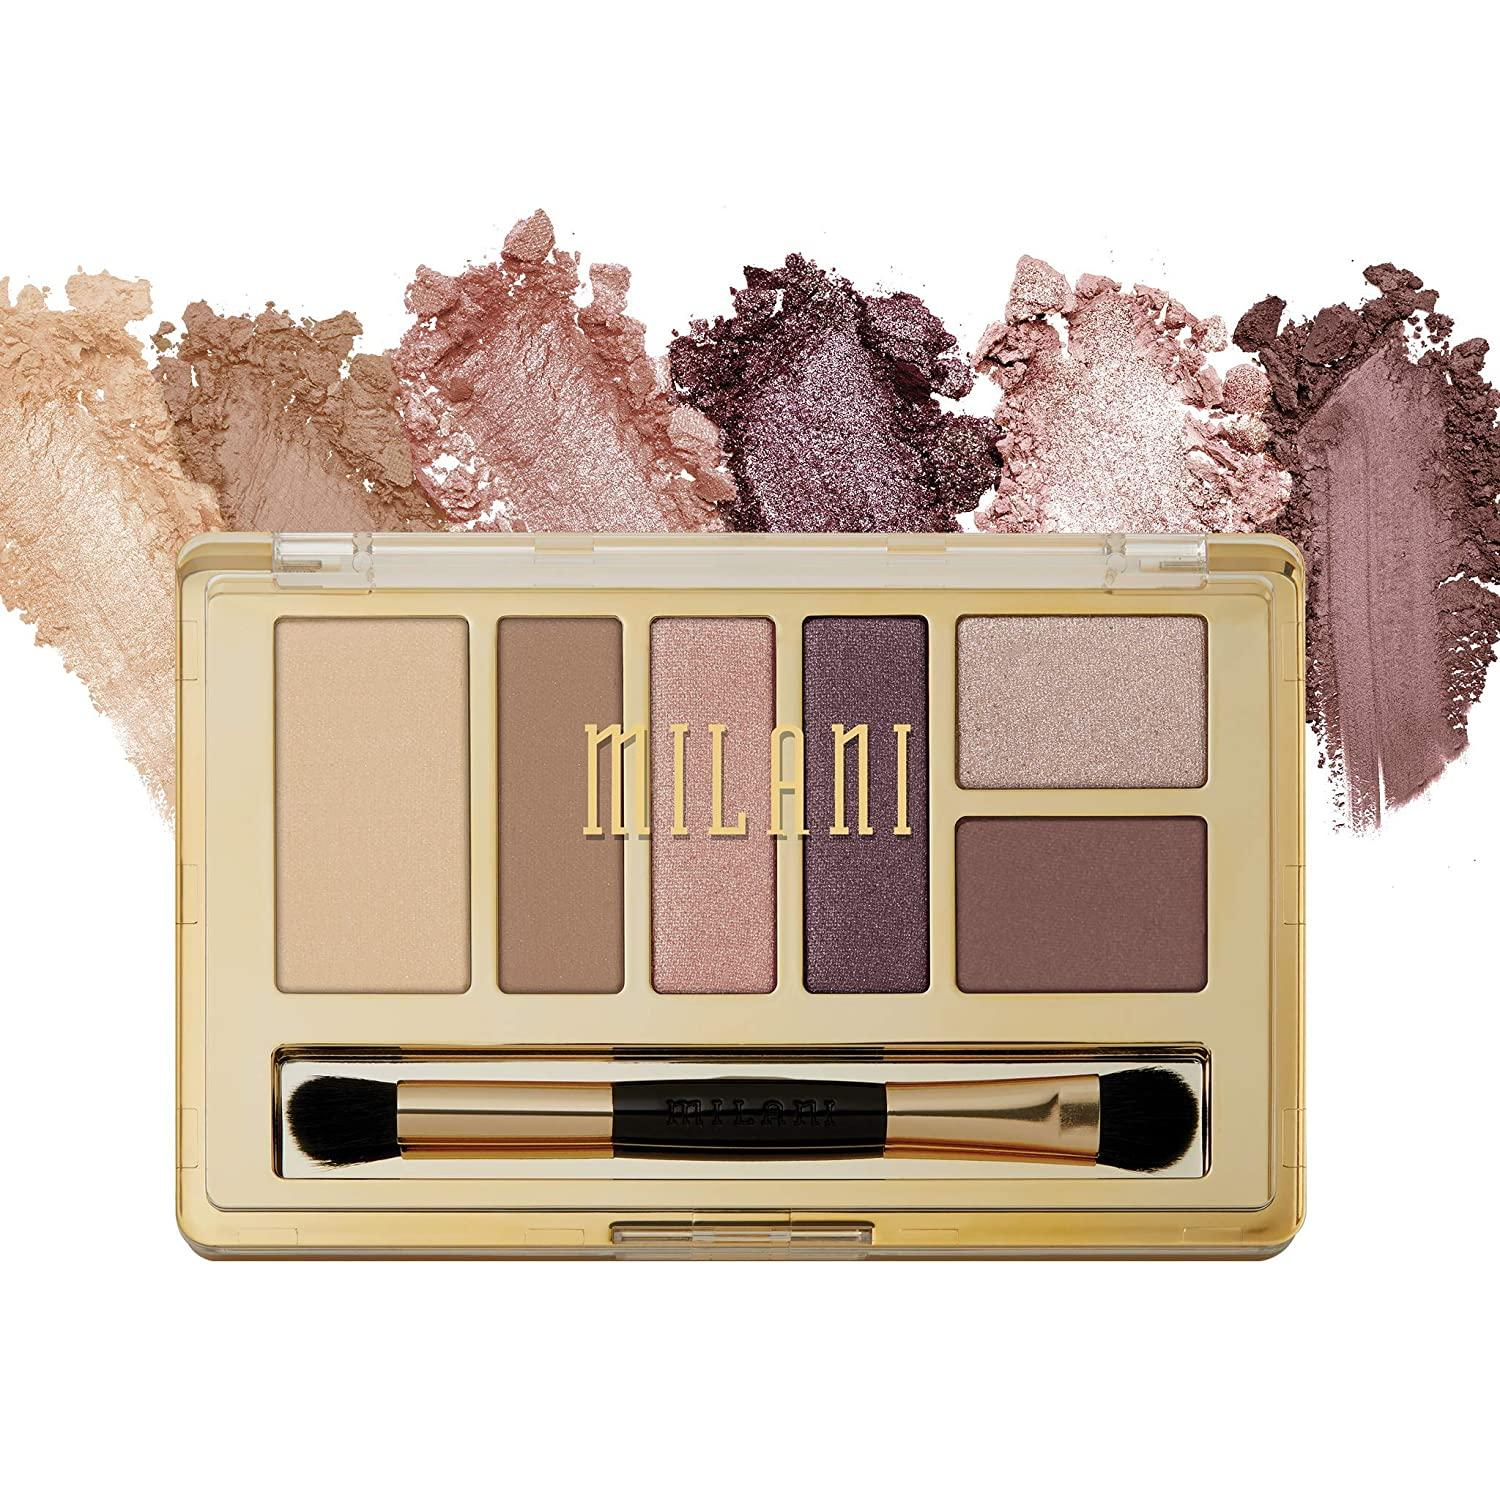 Milani Everyday Eyes Eyeshadow Palette, Plum Basics, 6 Cruelty-Free Matte or Metallic Eyeshadow Colors to Contour & Highlight, 0.21 Ounce